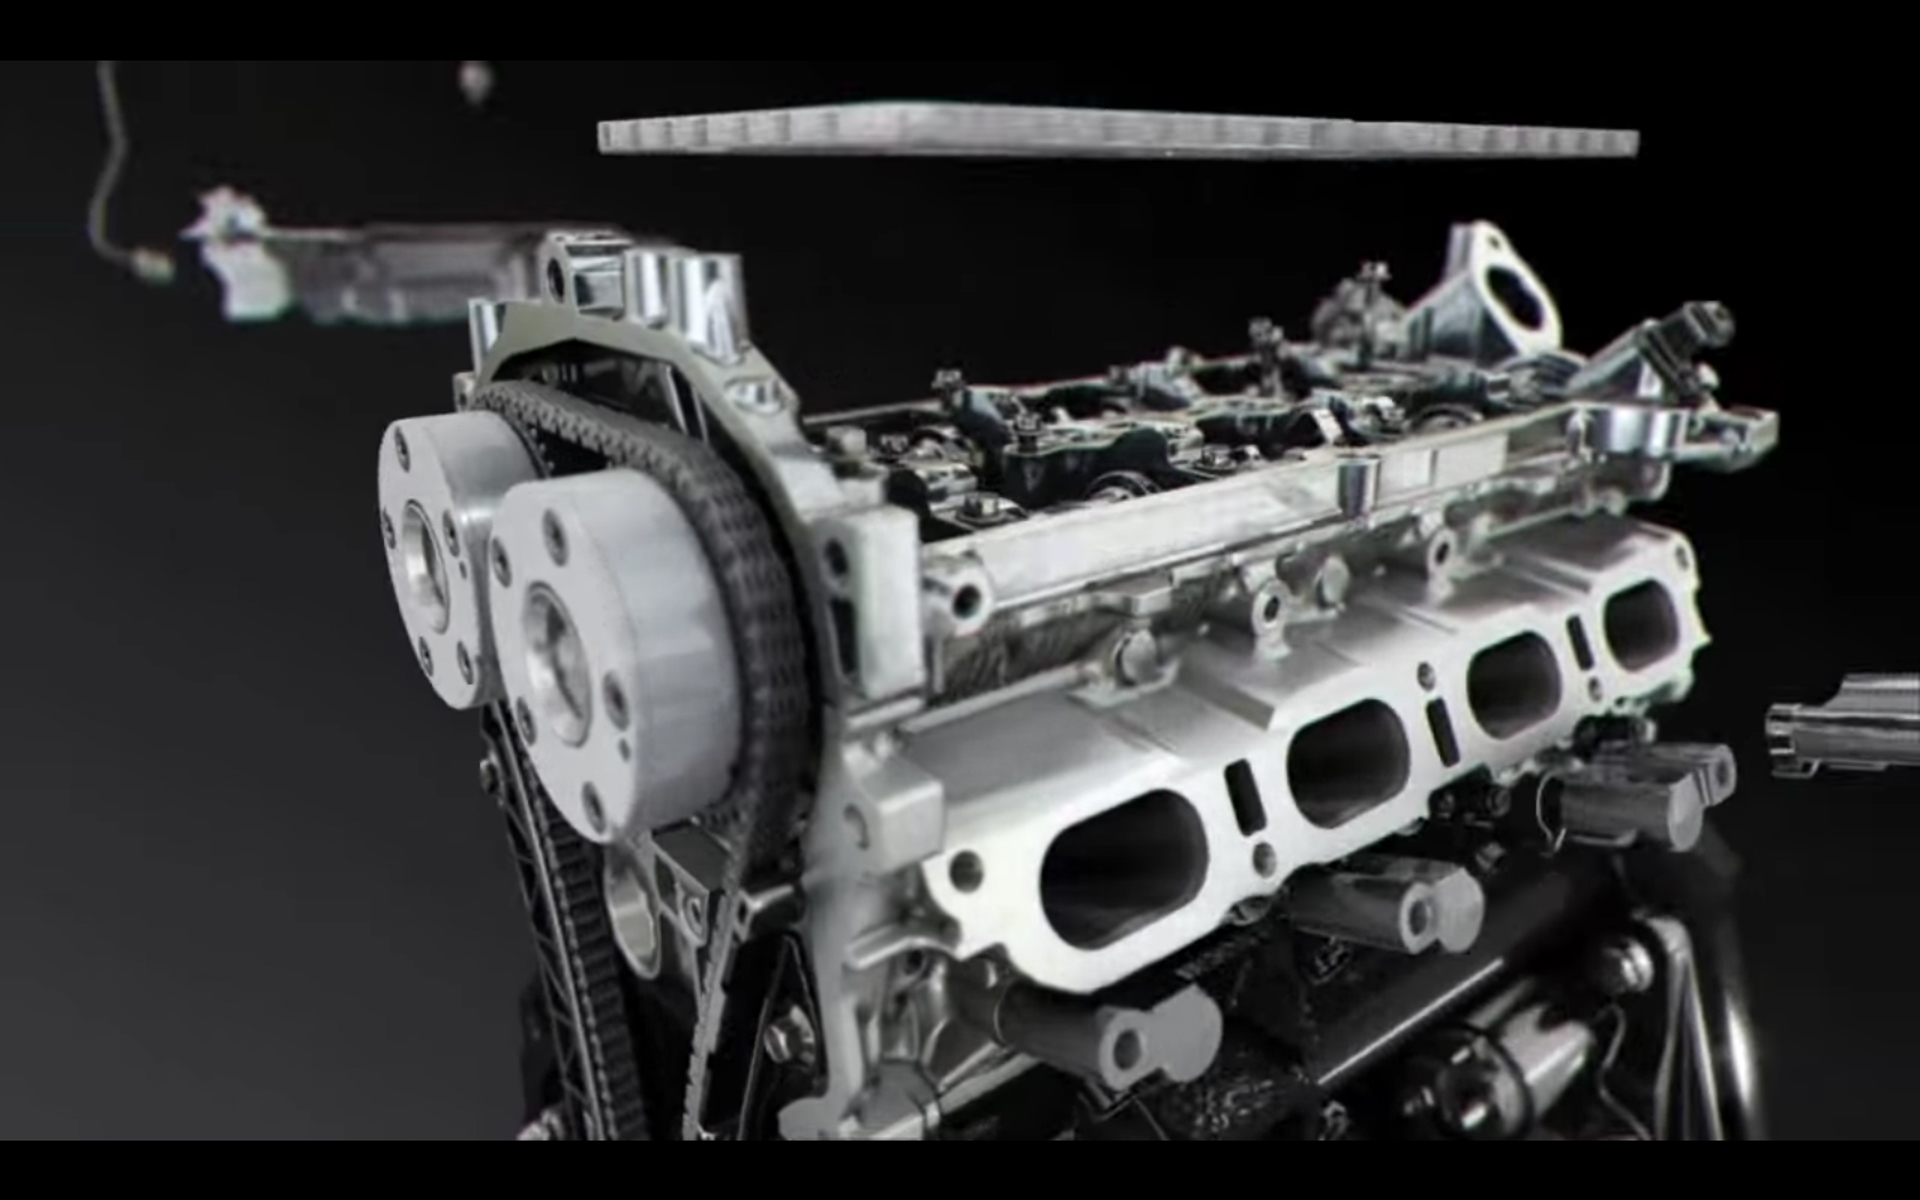 Renault - 1.8L TCe - engine / moteur - by chain preview